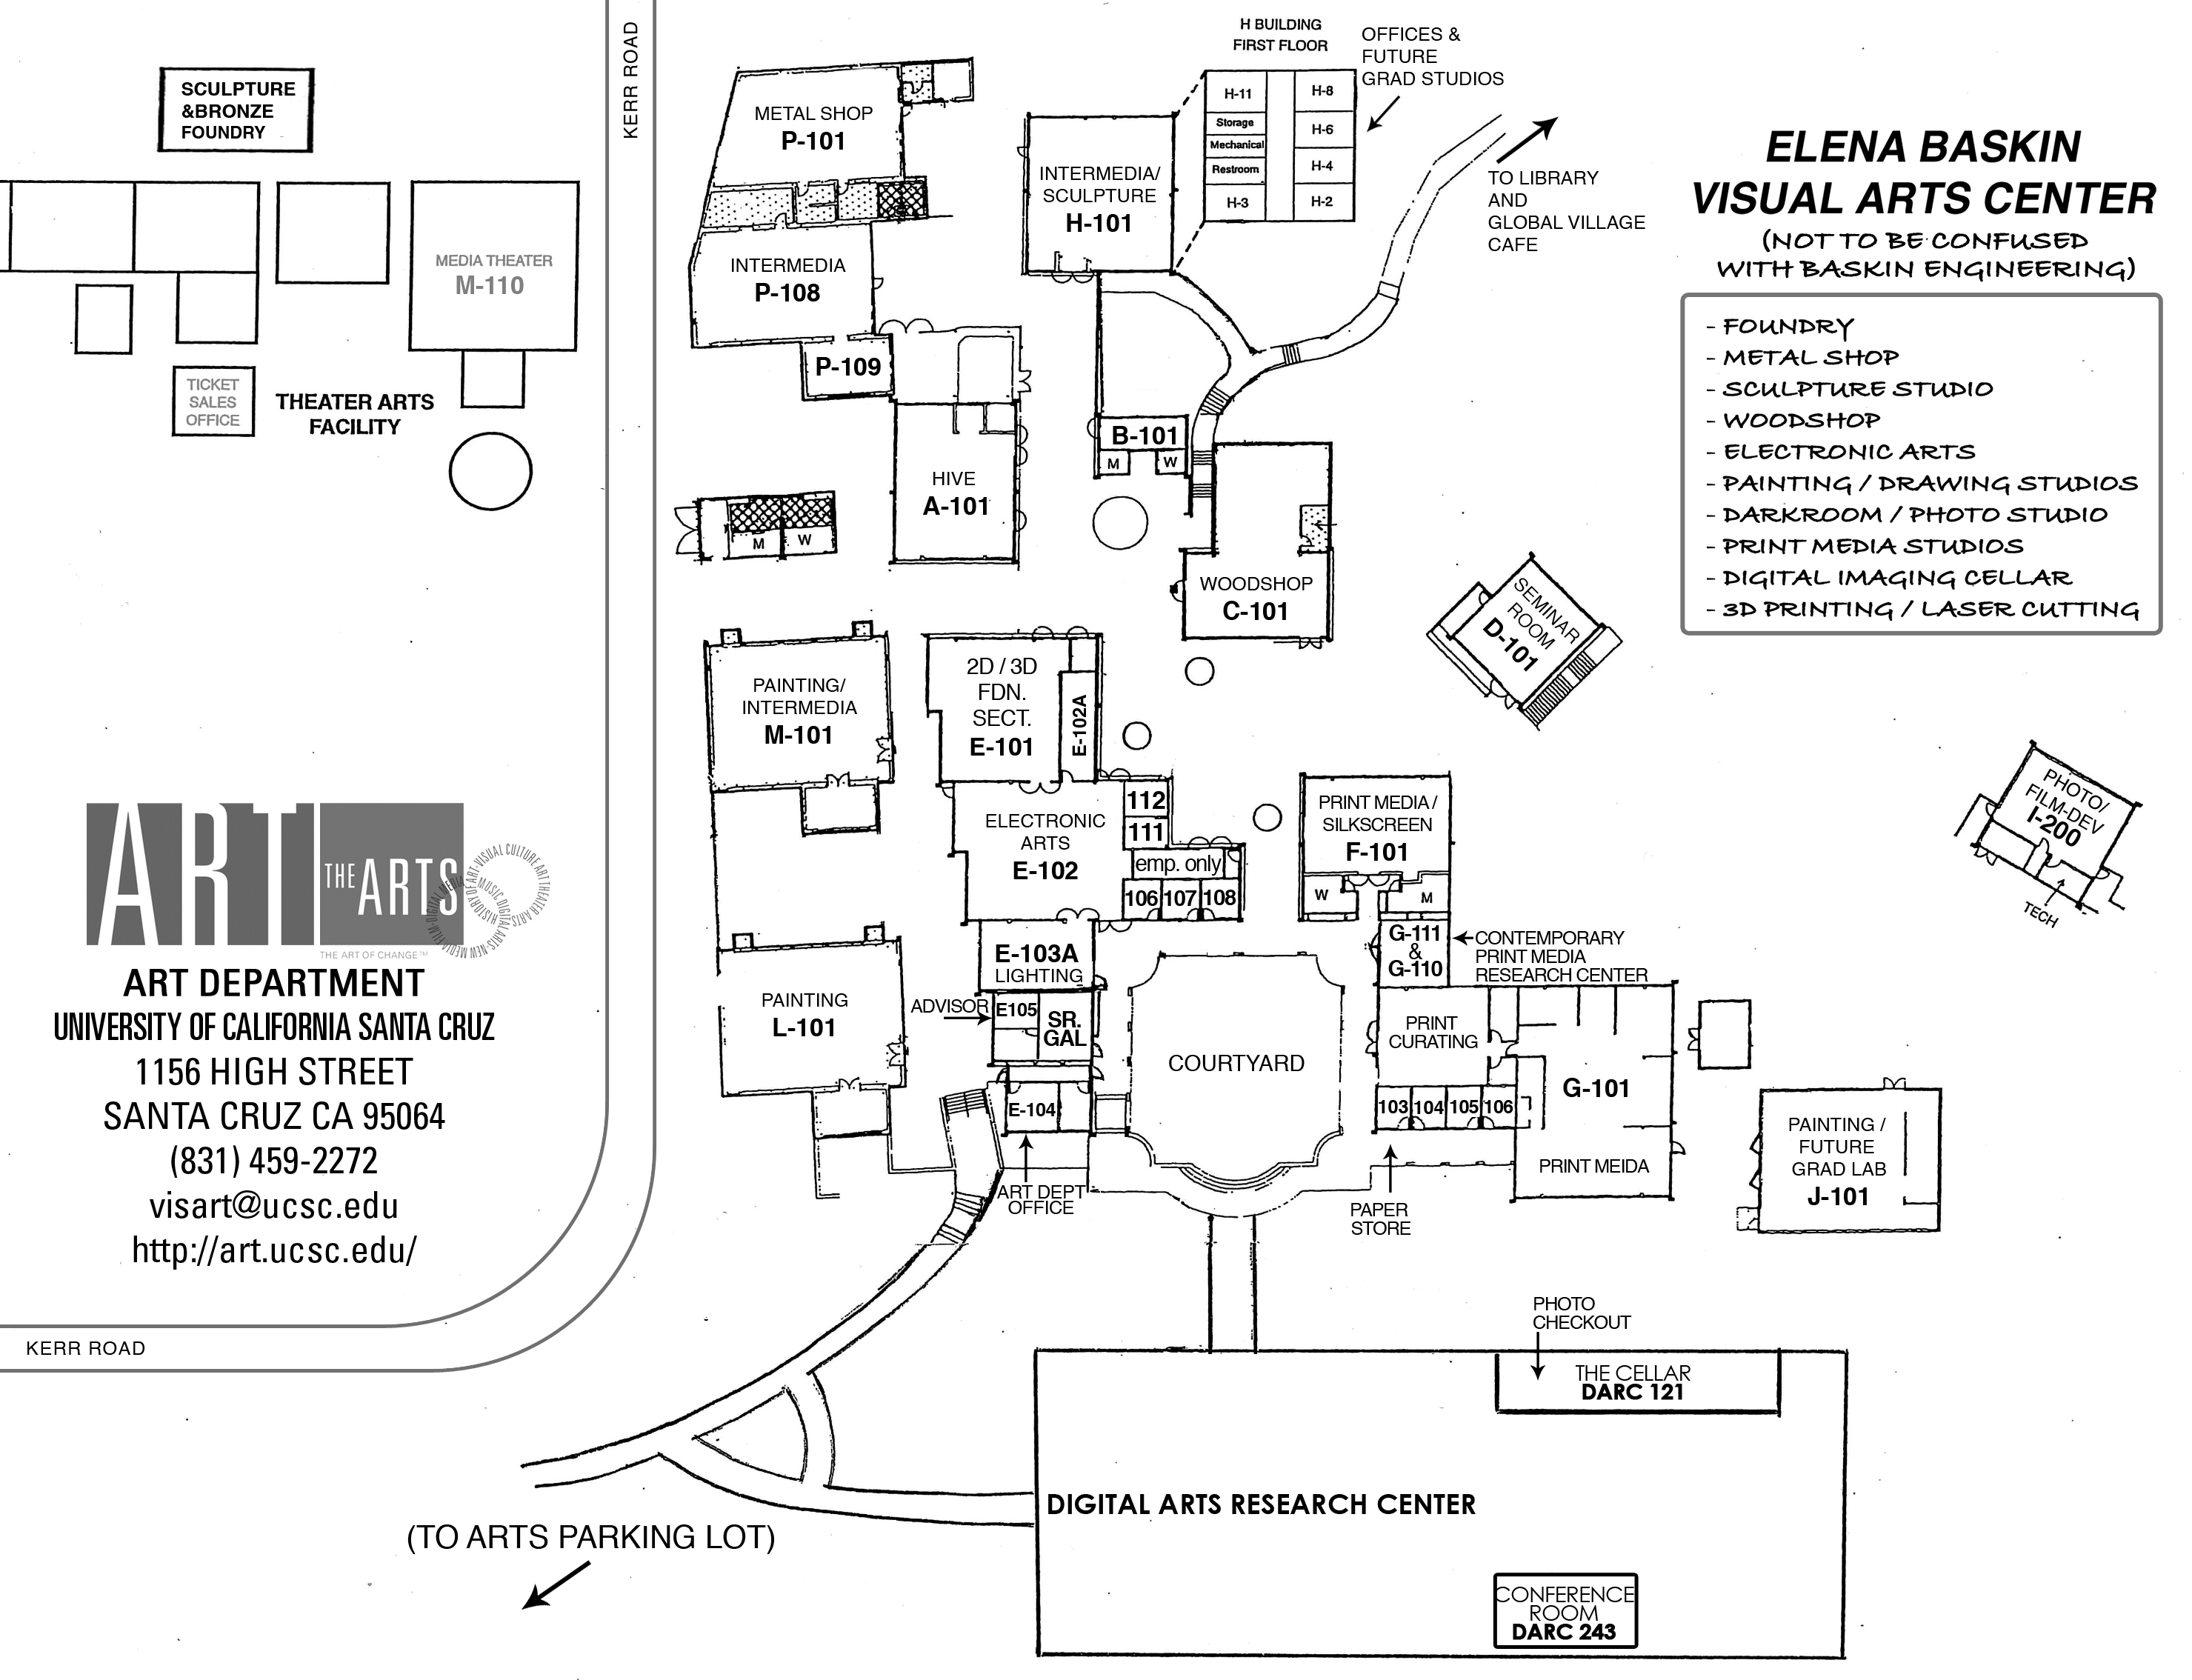 UCSC Art Department Map